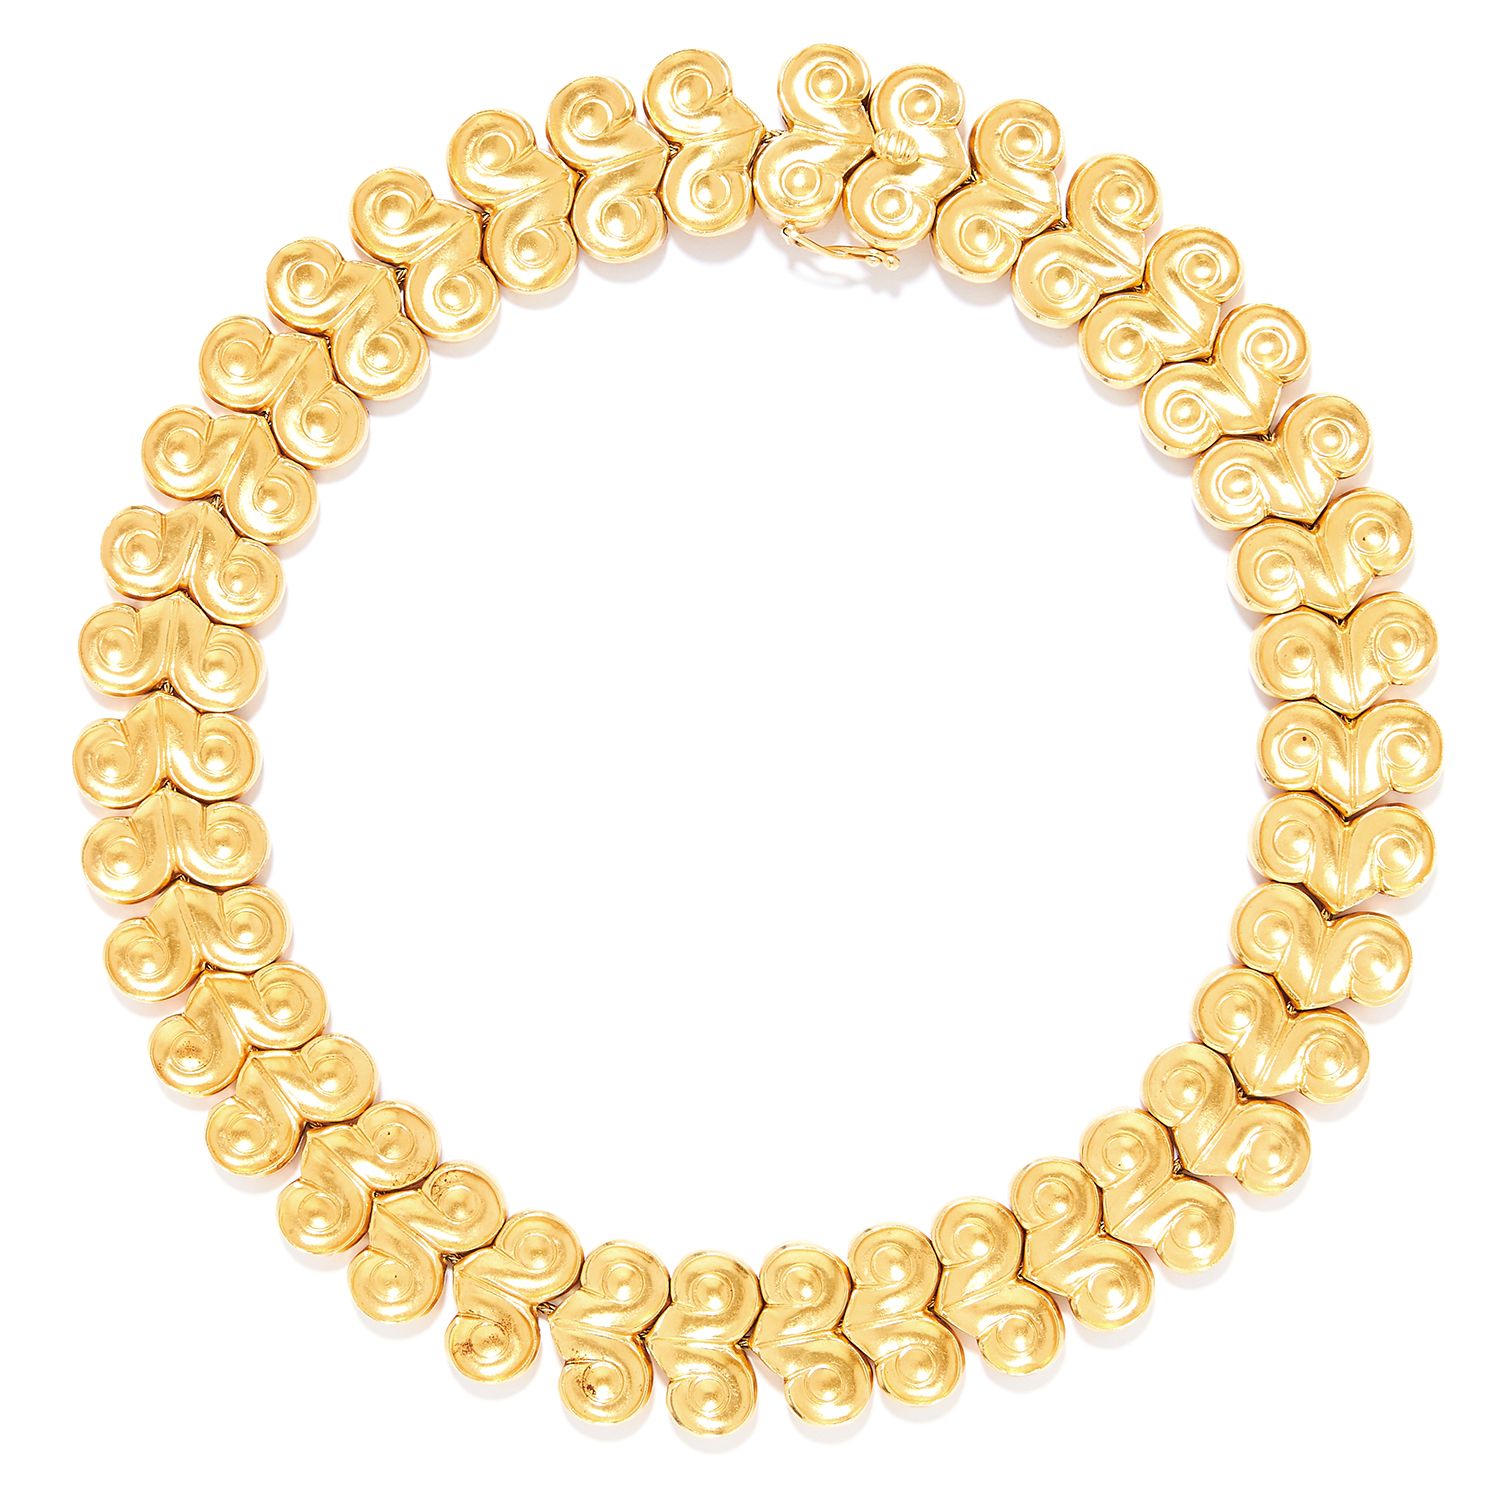 Los 53 - VINTAGE GOLD NECKLACE, LALAOUNIS, CIRCA 1960 in 18ct yellow gold, in collar style with engraved